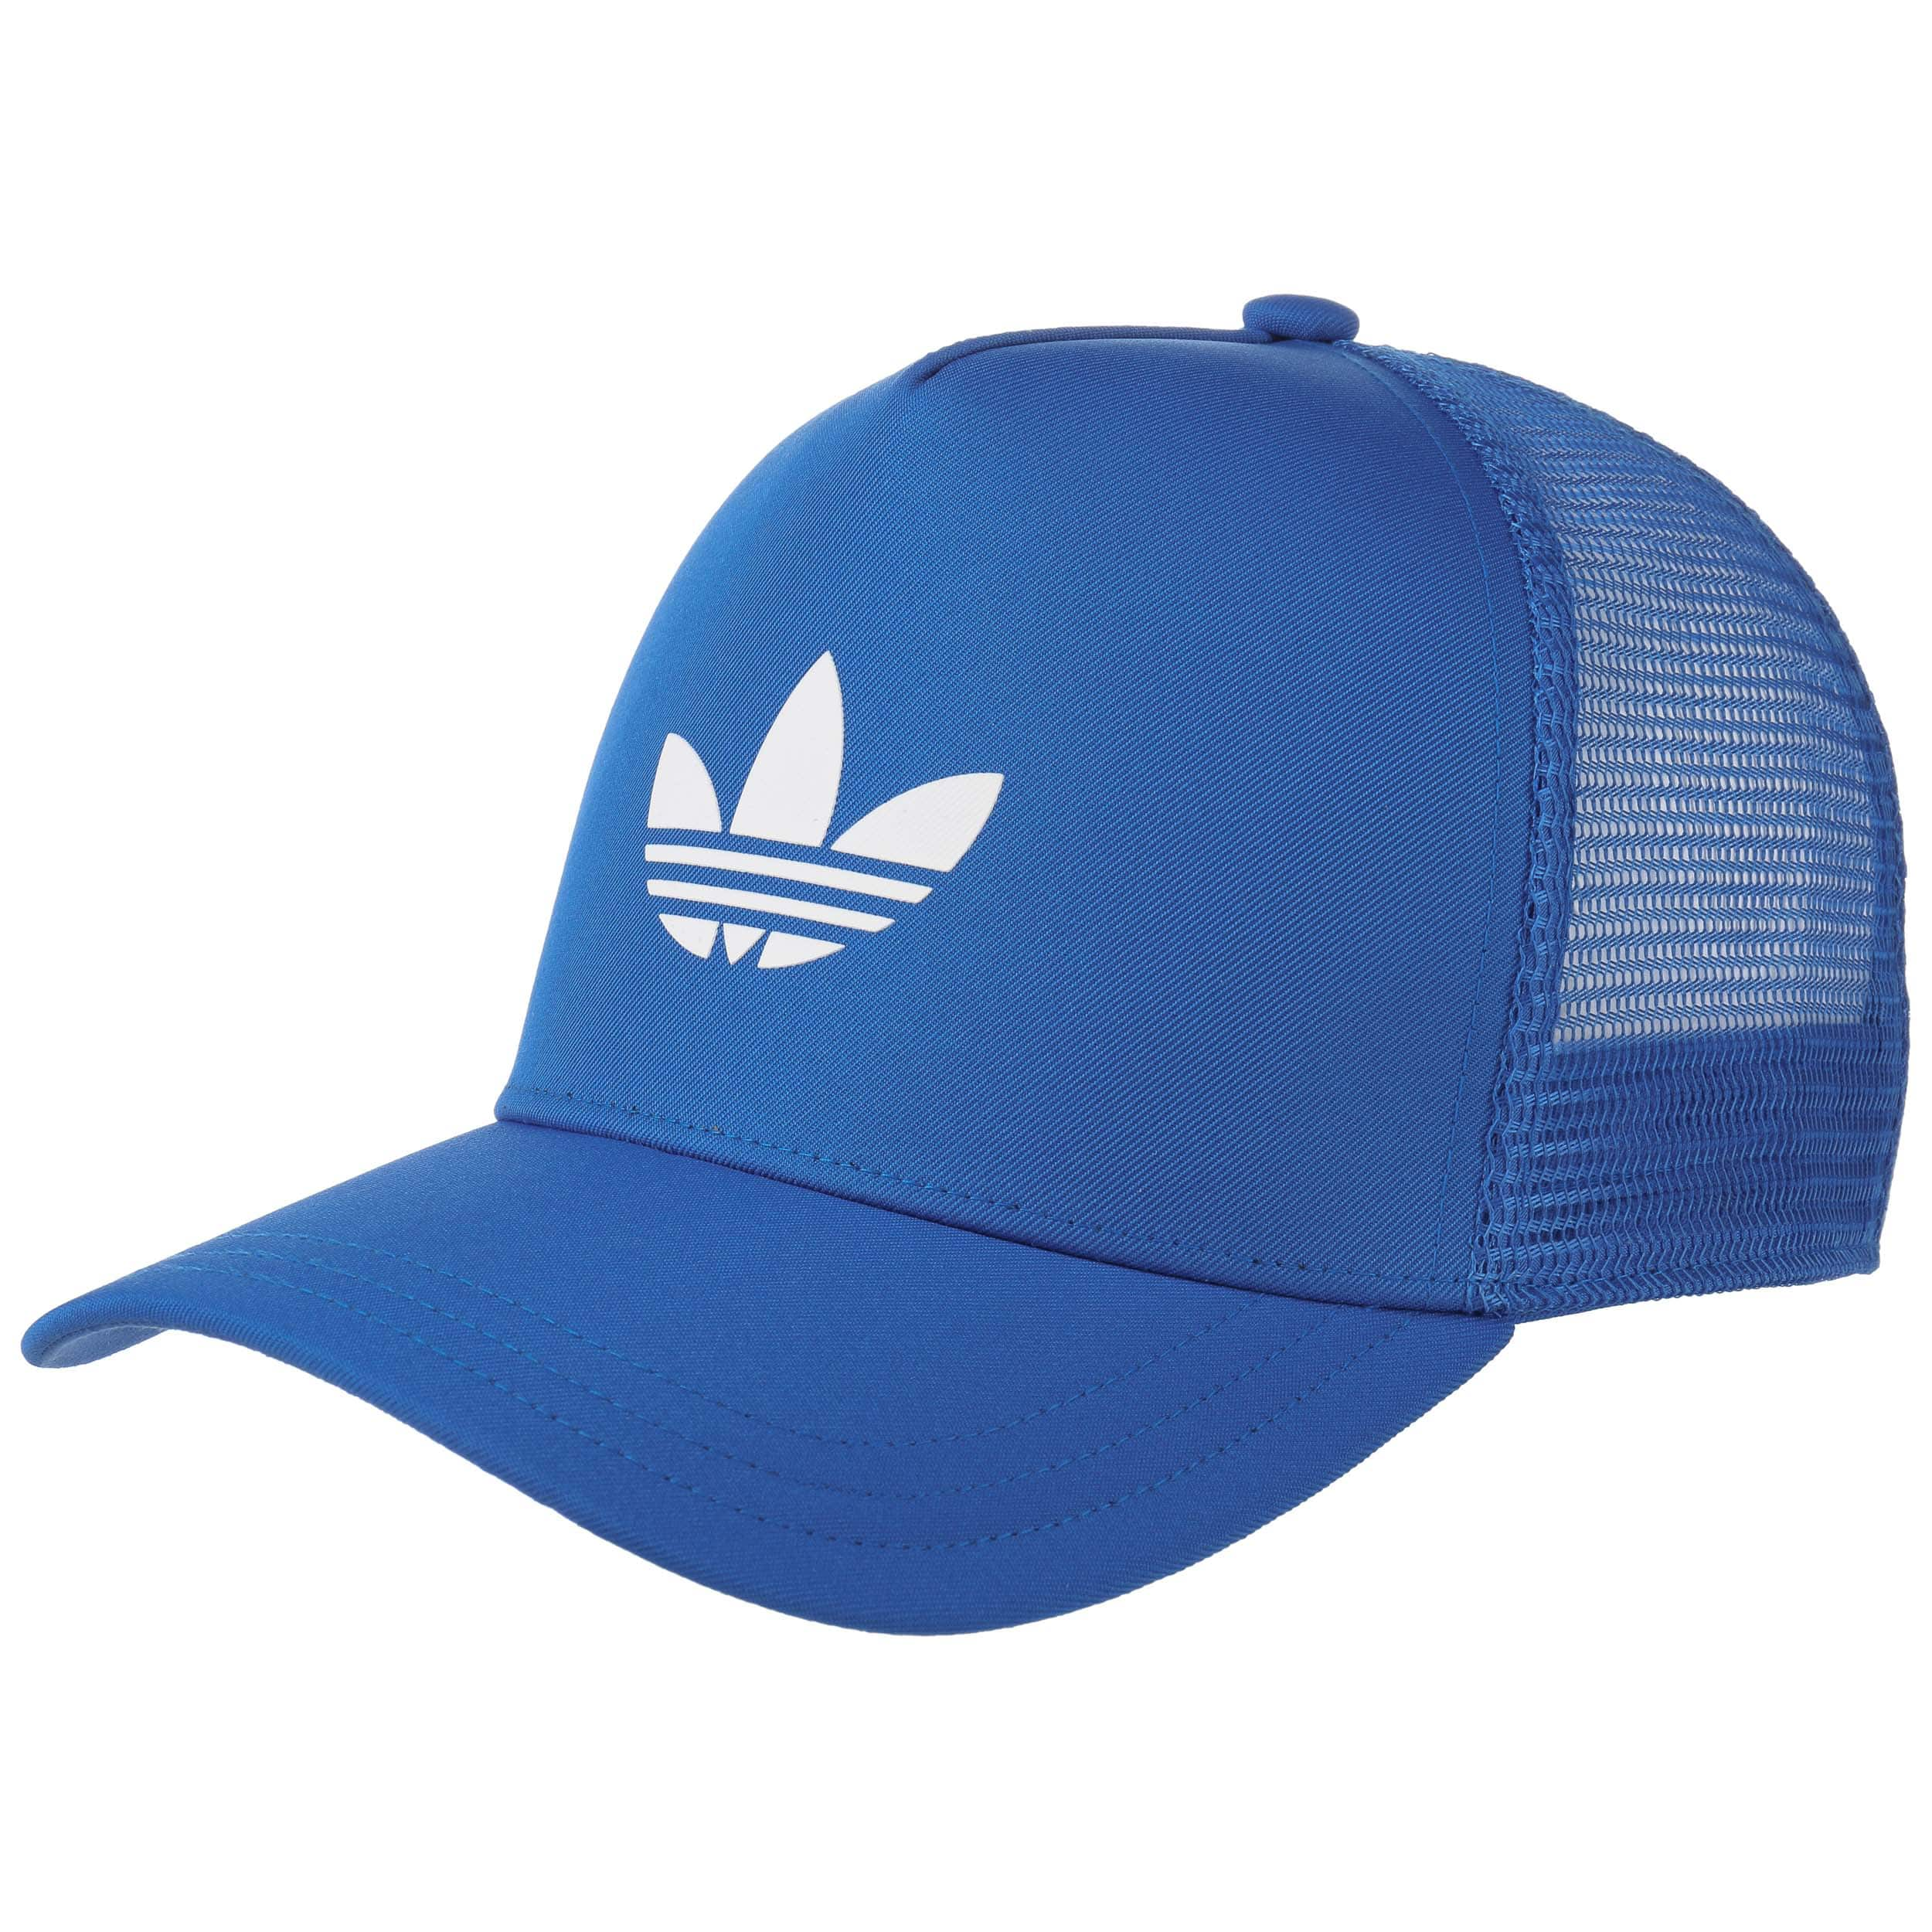 ... Trefoil Trucker Cap by adidas - blue 2 ... 4802225472b5